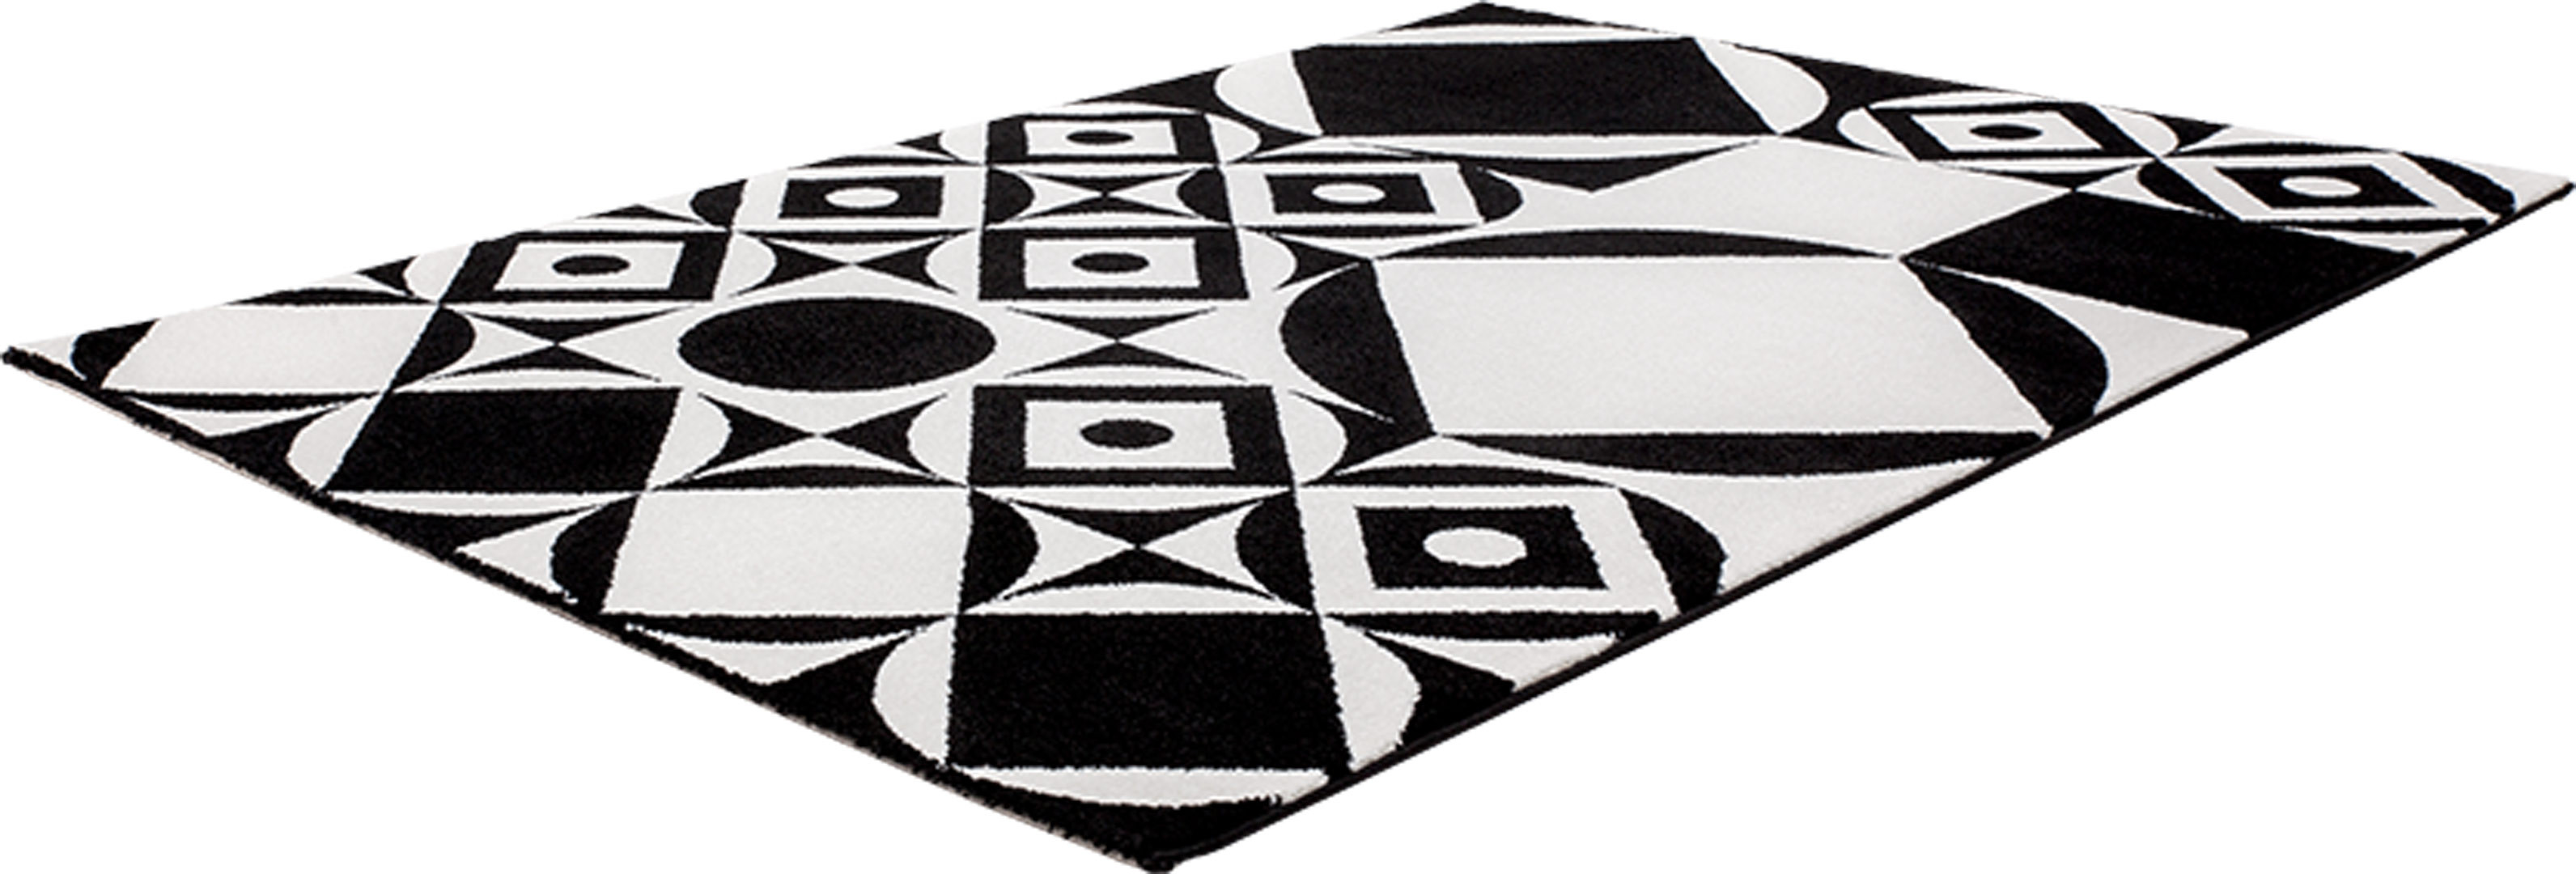 tapis design noir et blanc g om trique jersey. Black Bedroom Furniture Sets. Home Design Ideas